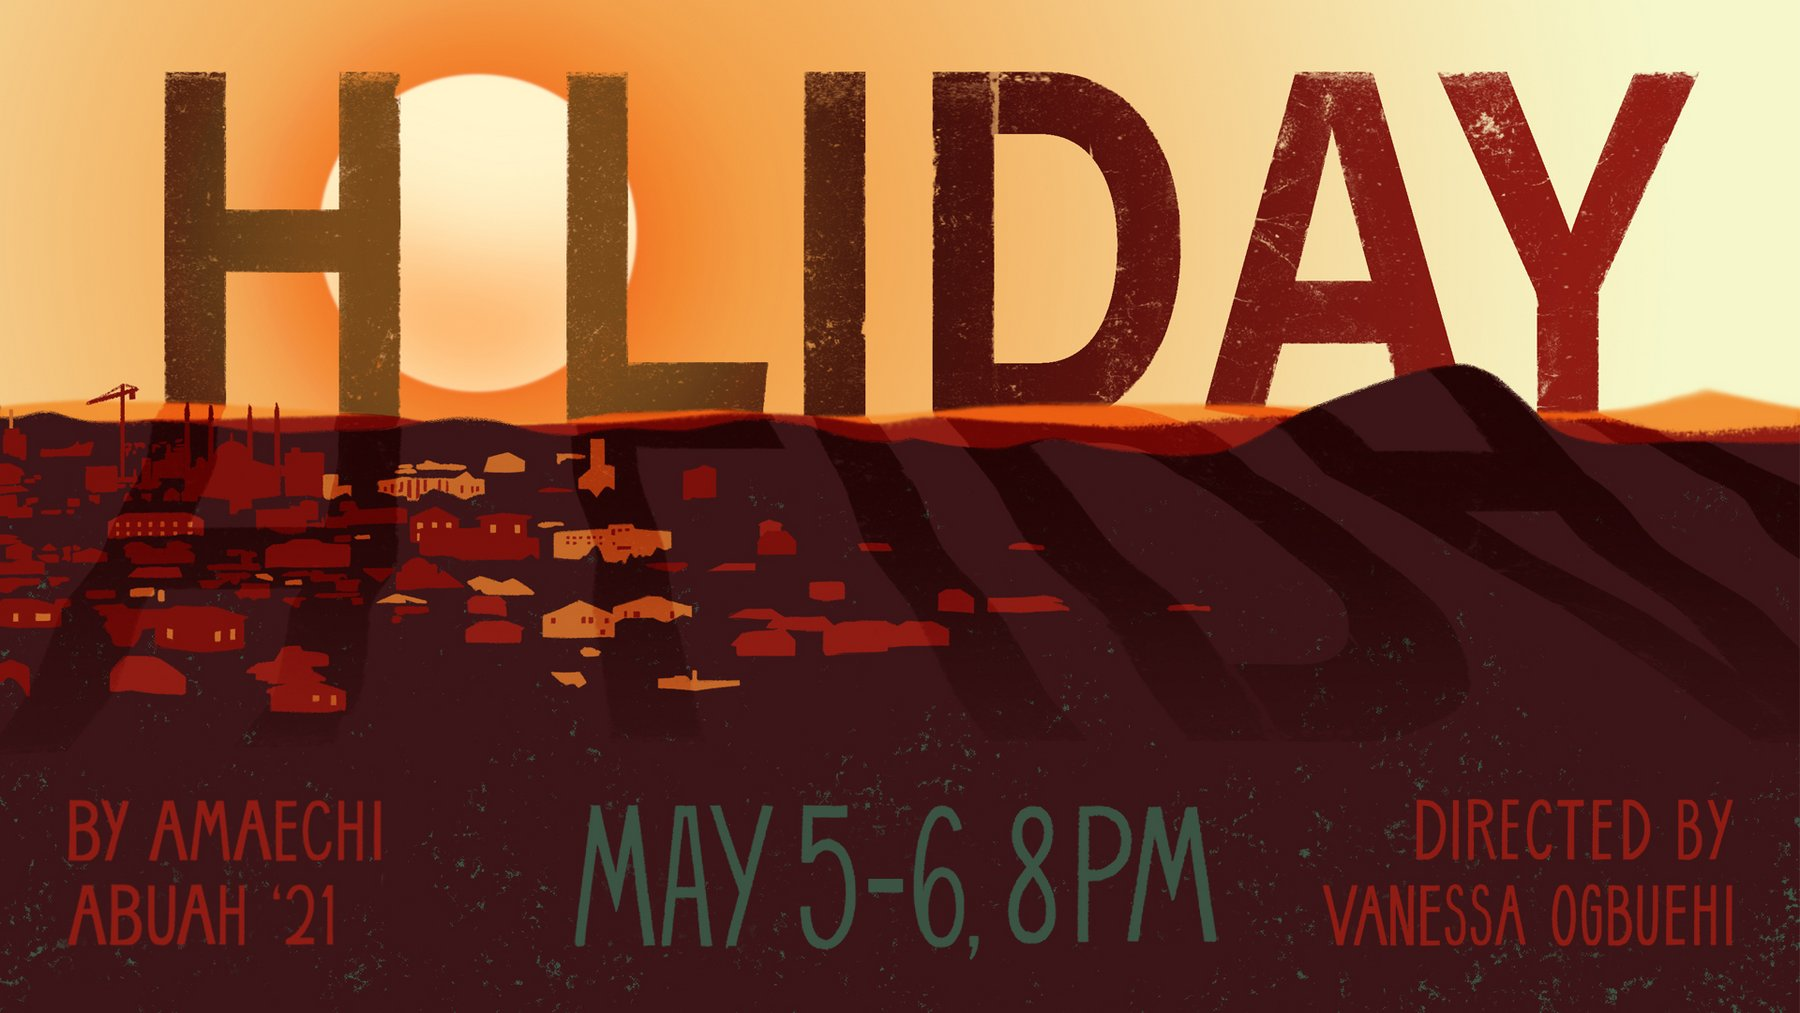 """A sun sets over a mountain range and distant town. Text reads """"HOLIDAY By Amaechi Abuah '21 May 5-6 8pm Directed by Vanessa Ogbuehi"""""""